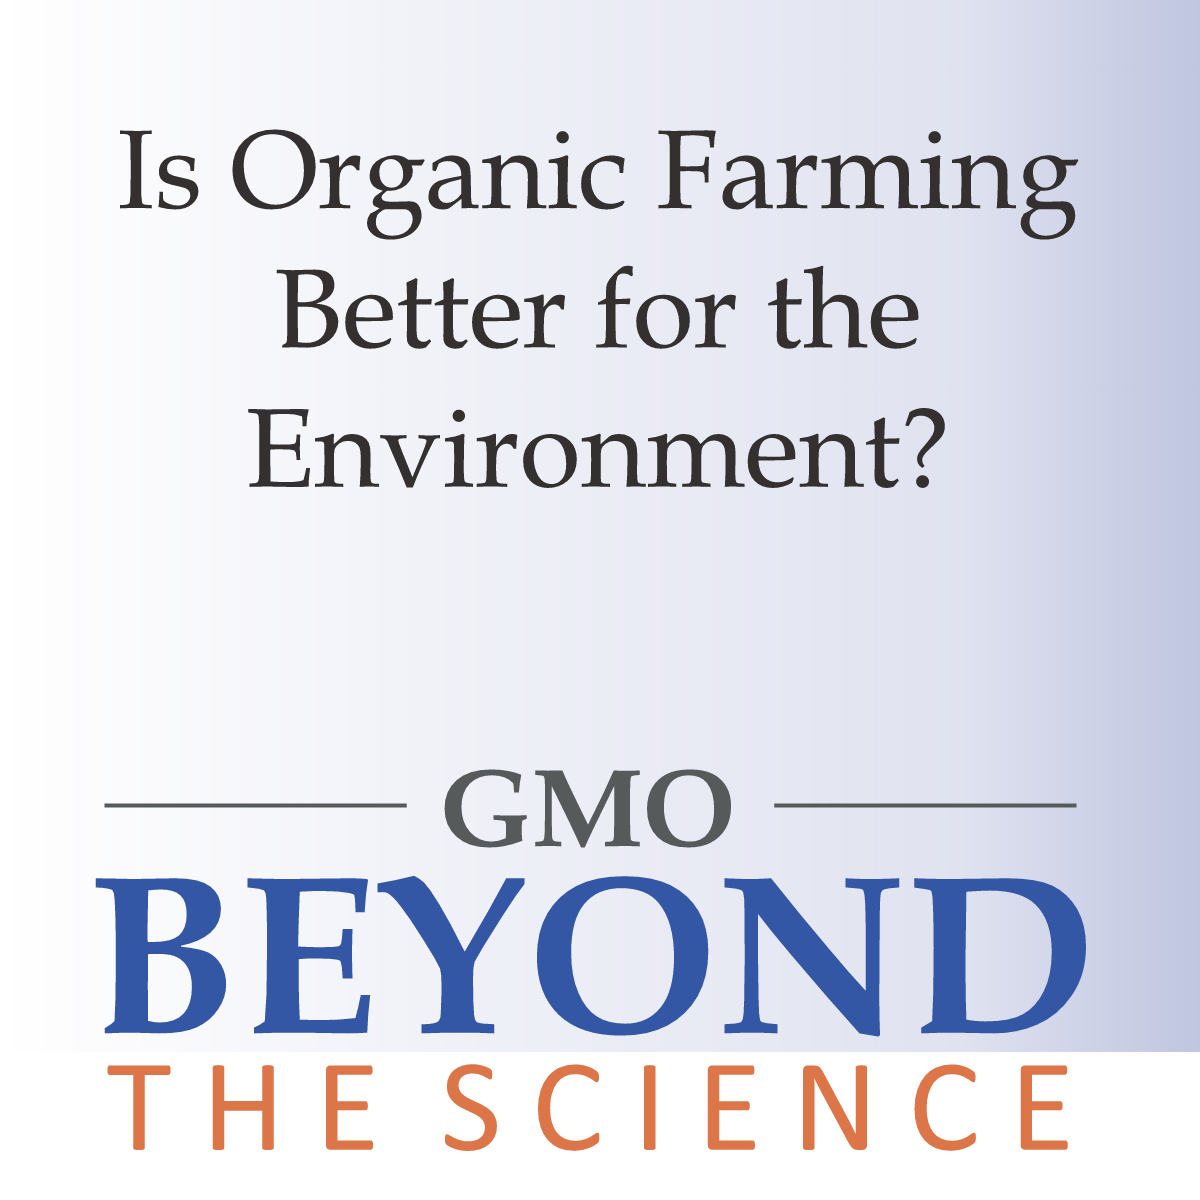 REVISED Is Organic Farming Better For The Environment Like Featured Image